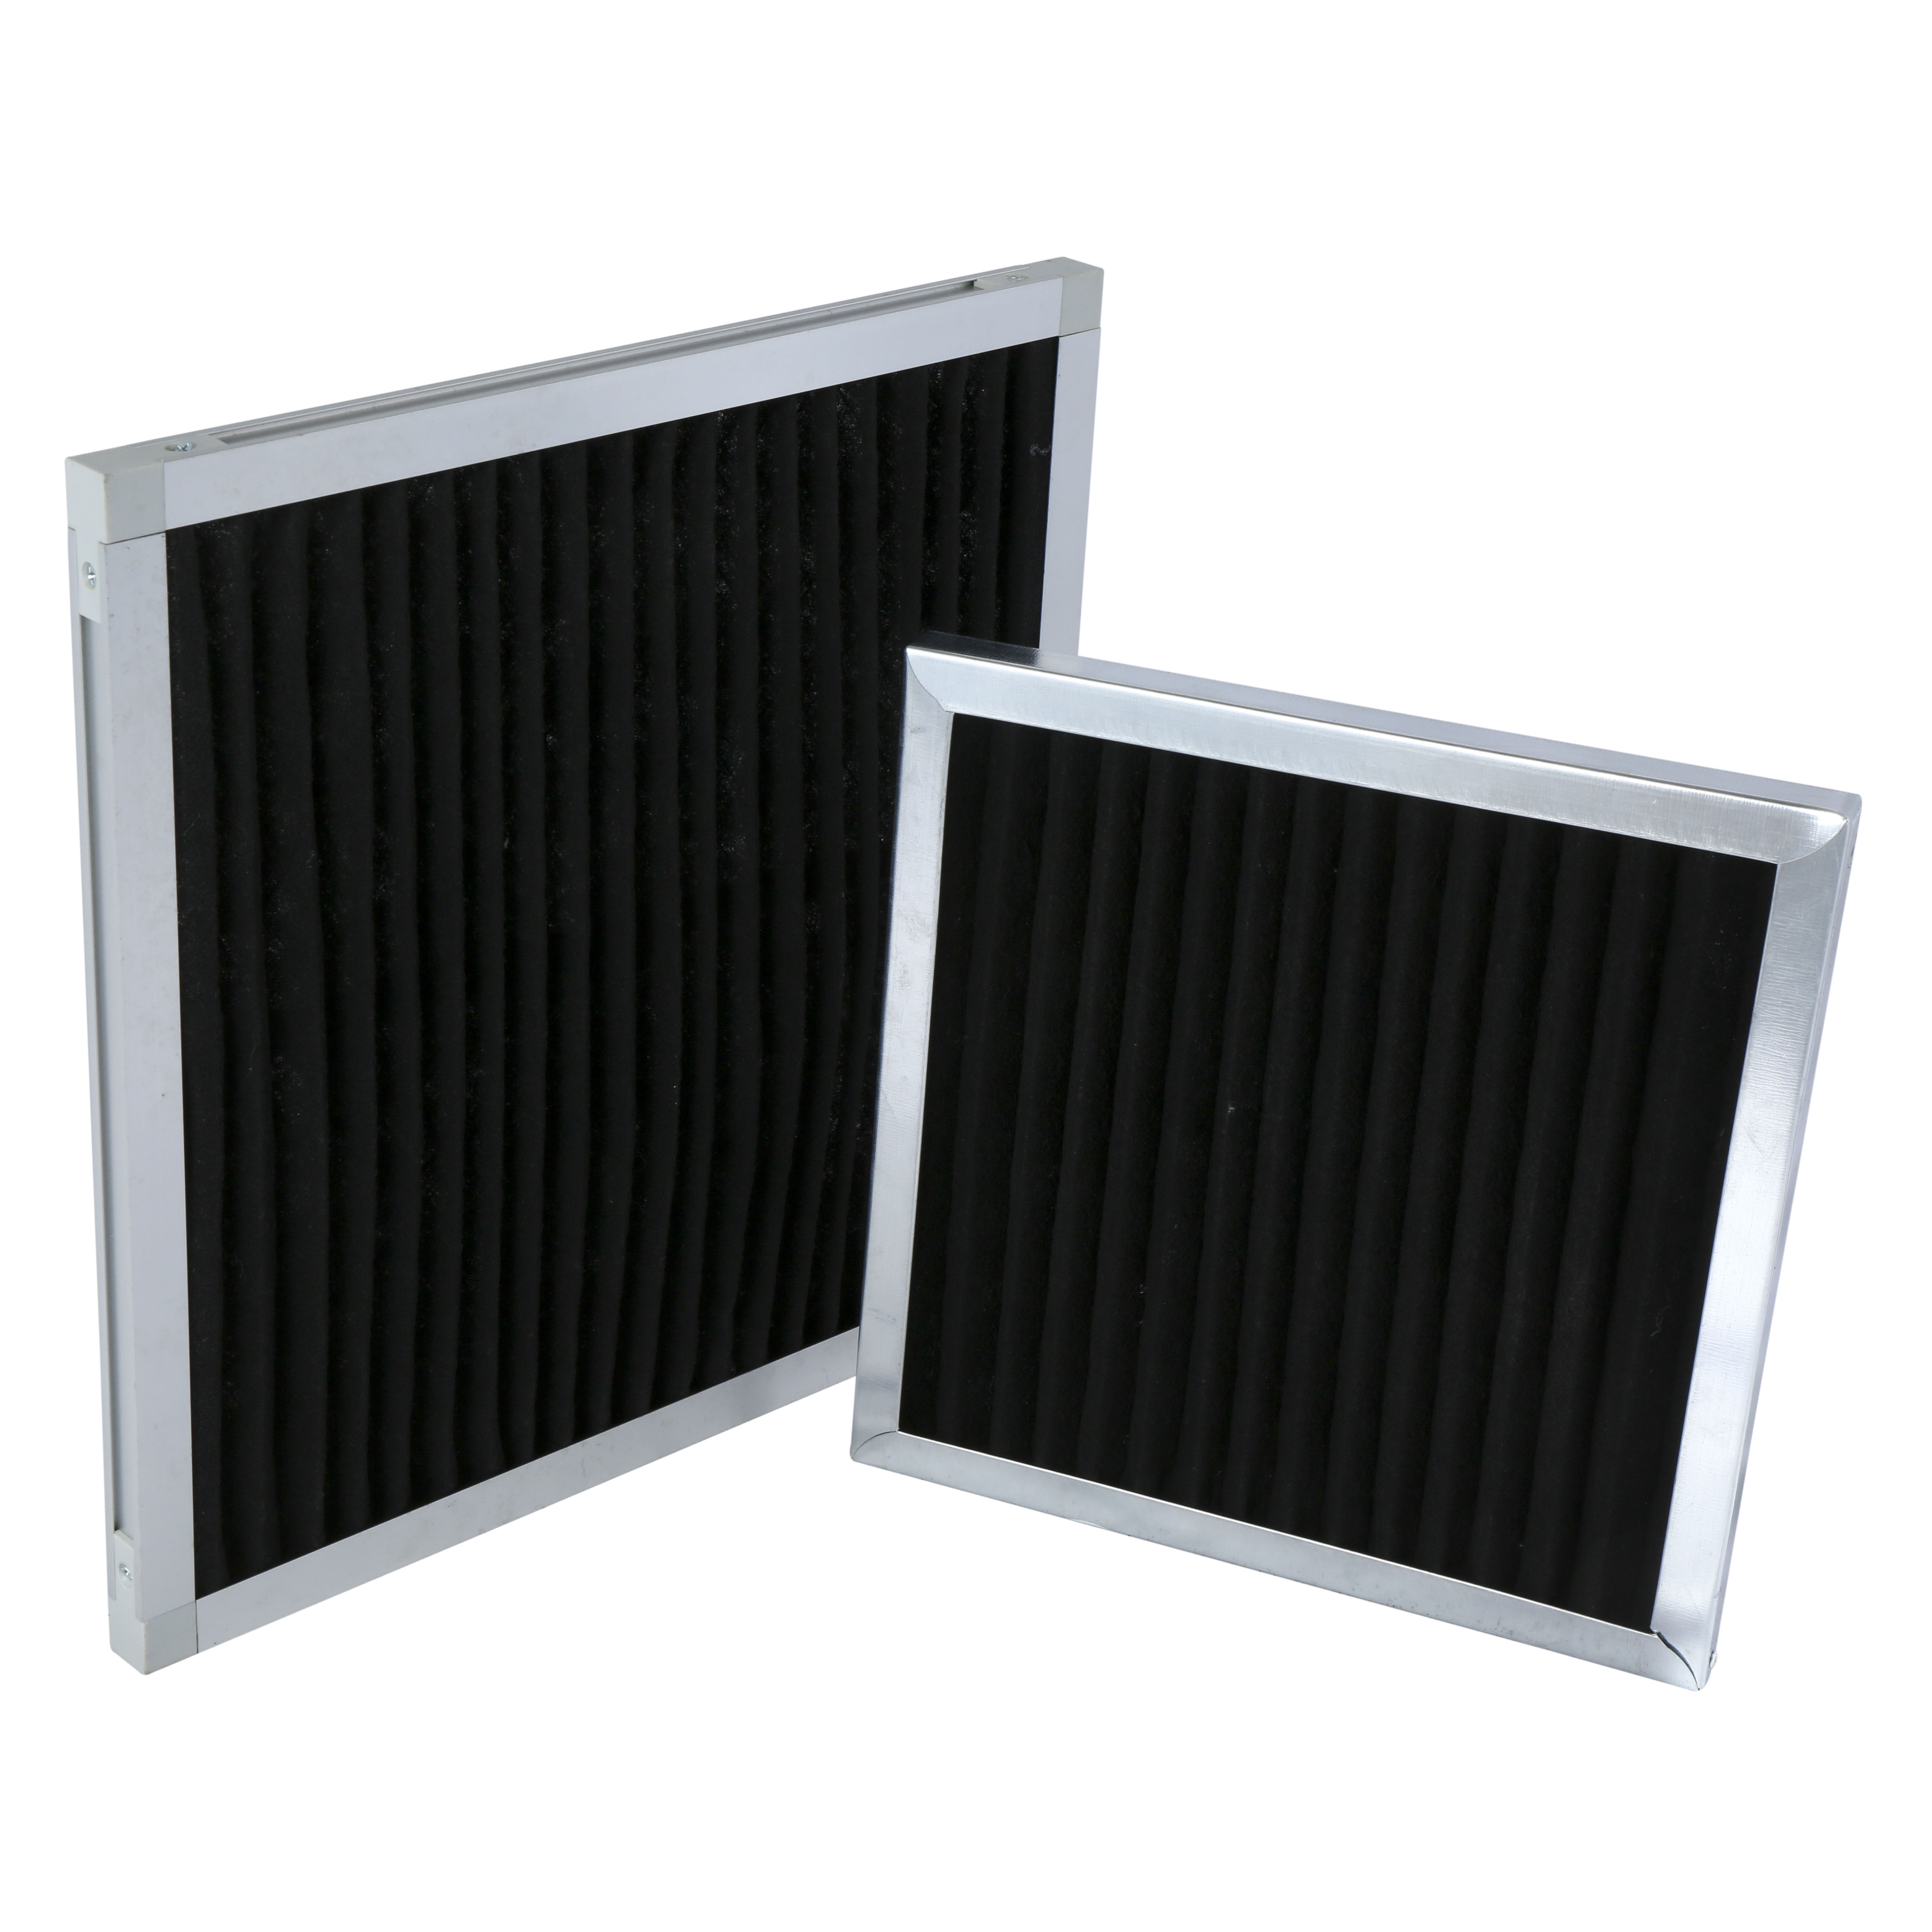 20x20x1 Inch MERV8 Paper Frame Primary Efficiency Panel Air Filter For HVAC Equipment